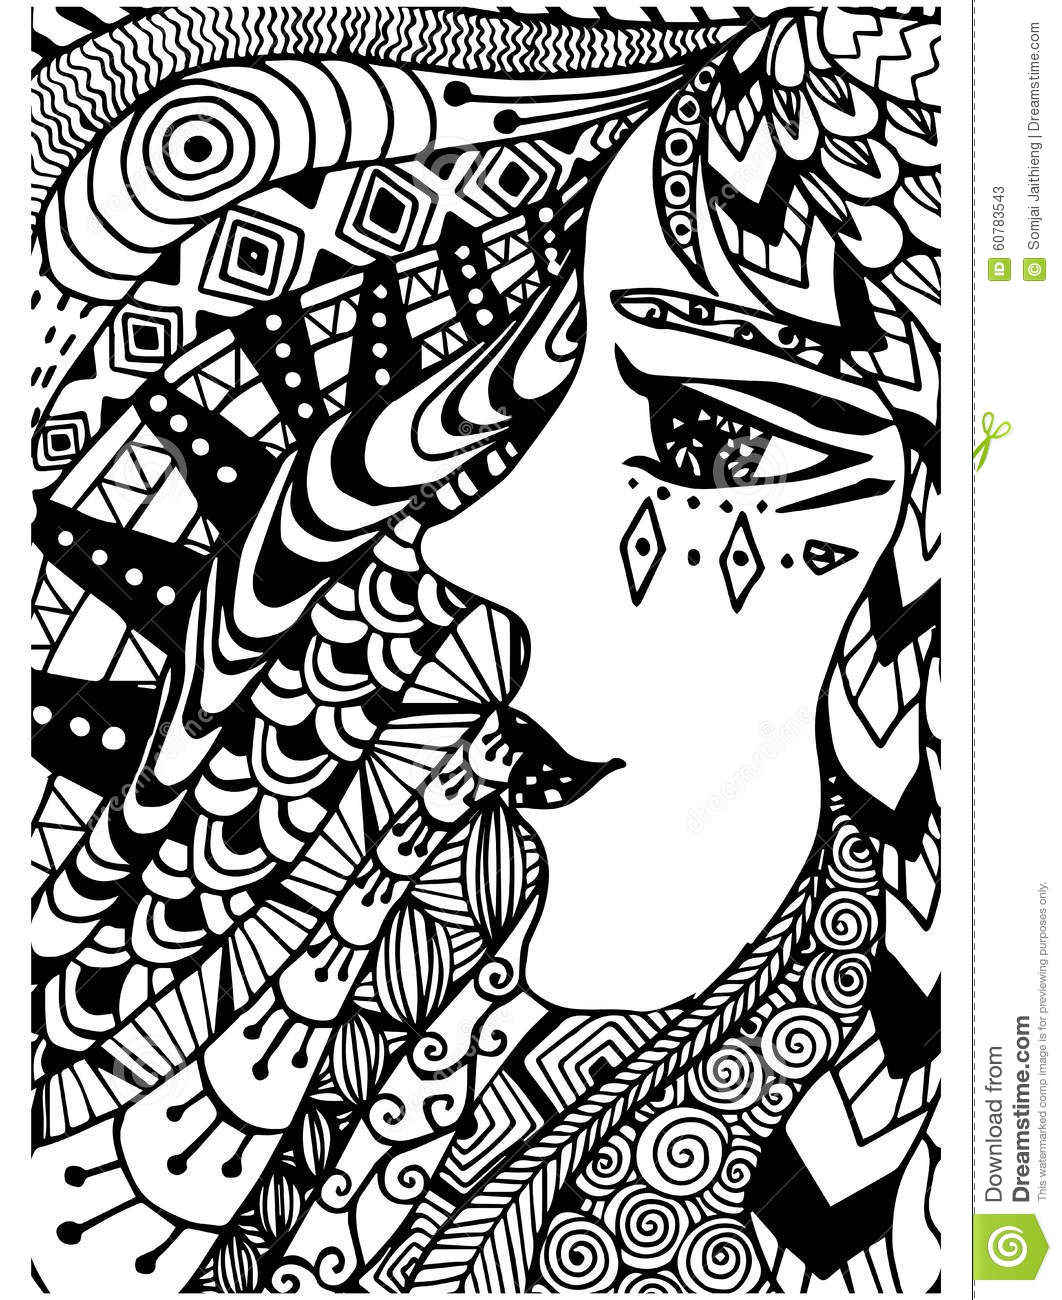 Pattern For Coloring Book Ethnicwoman Retro Doodle